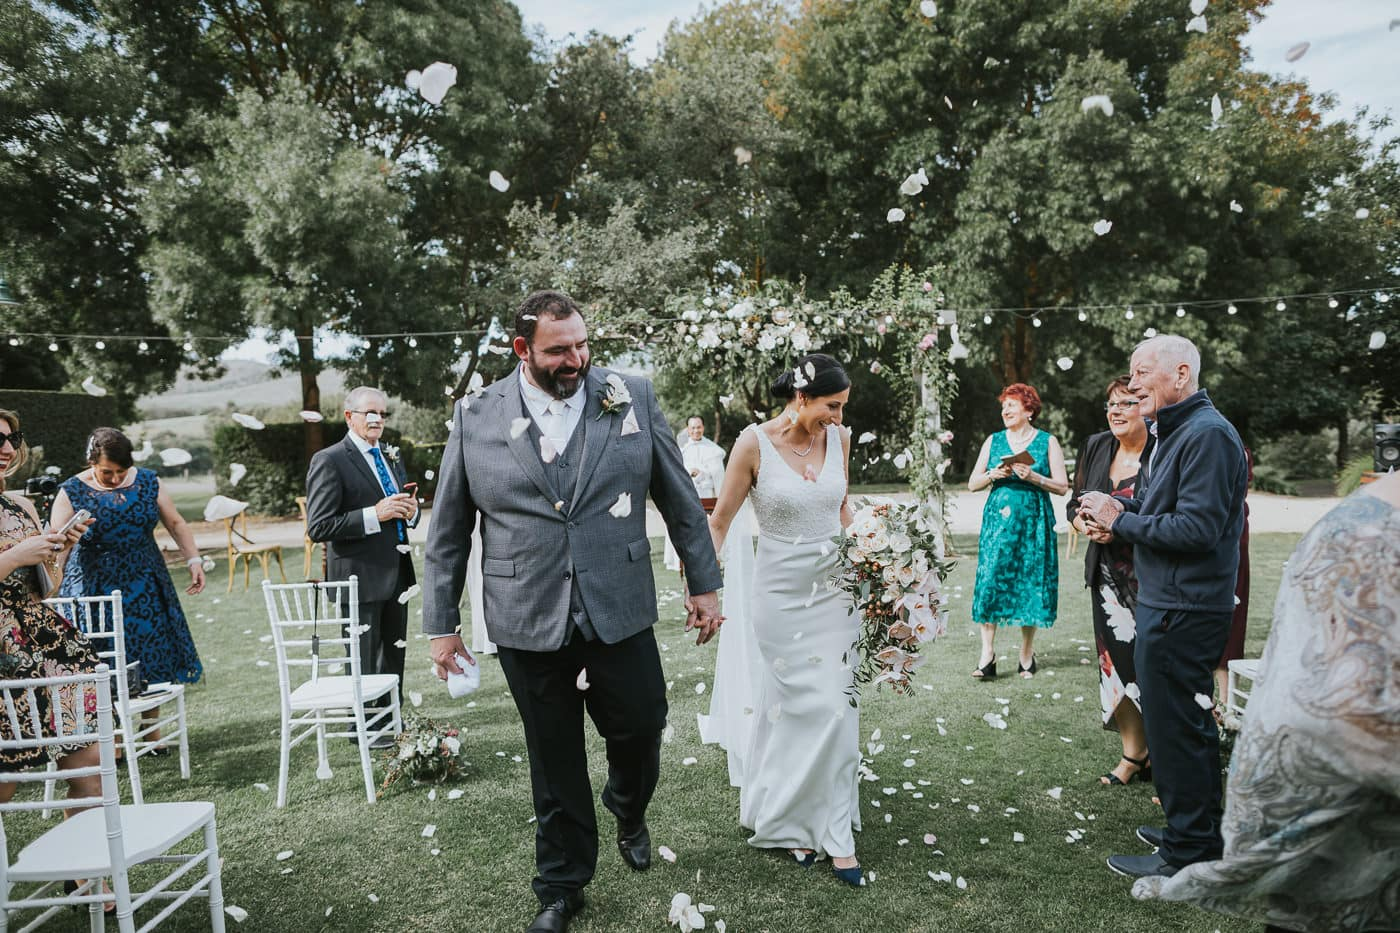 throwing rose petals after ceremony at flowerdale estate - Wedding photographer captures moments and emotion at wedding